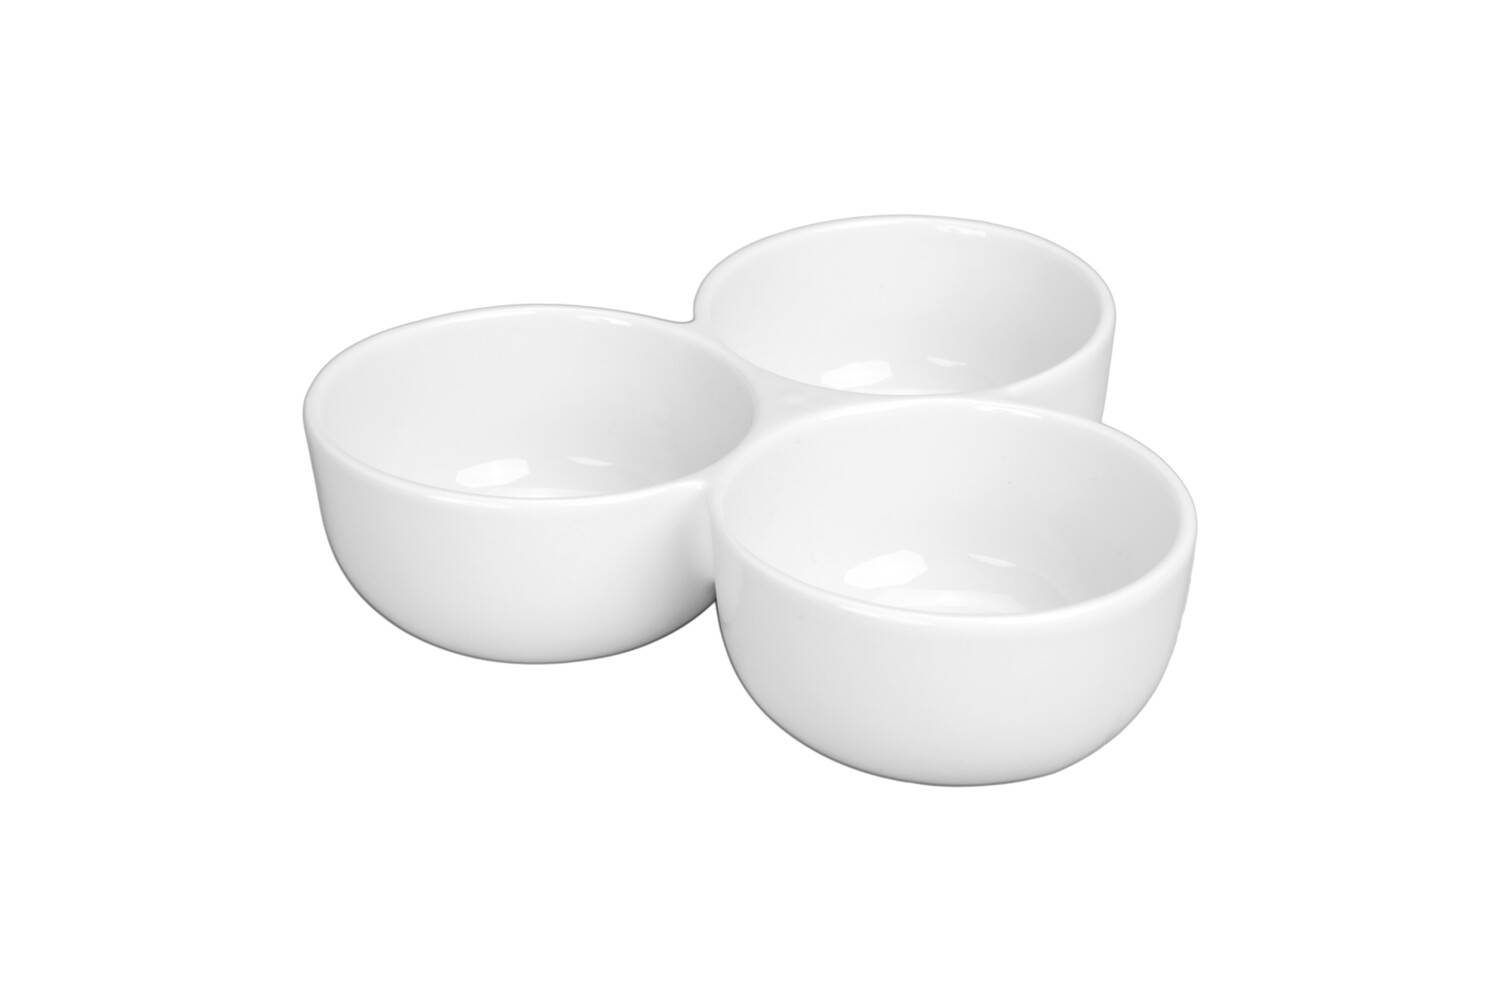 3 SECTION JOINED DIP BOWL